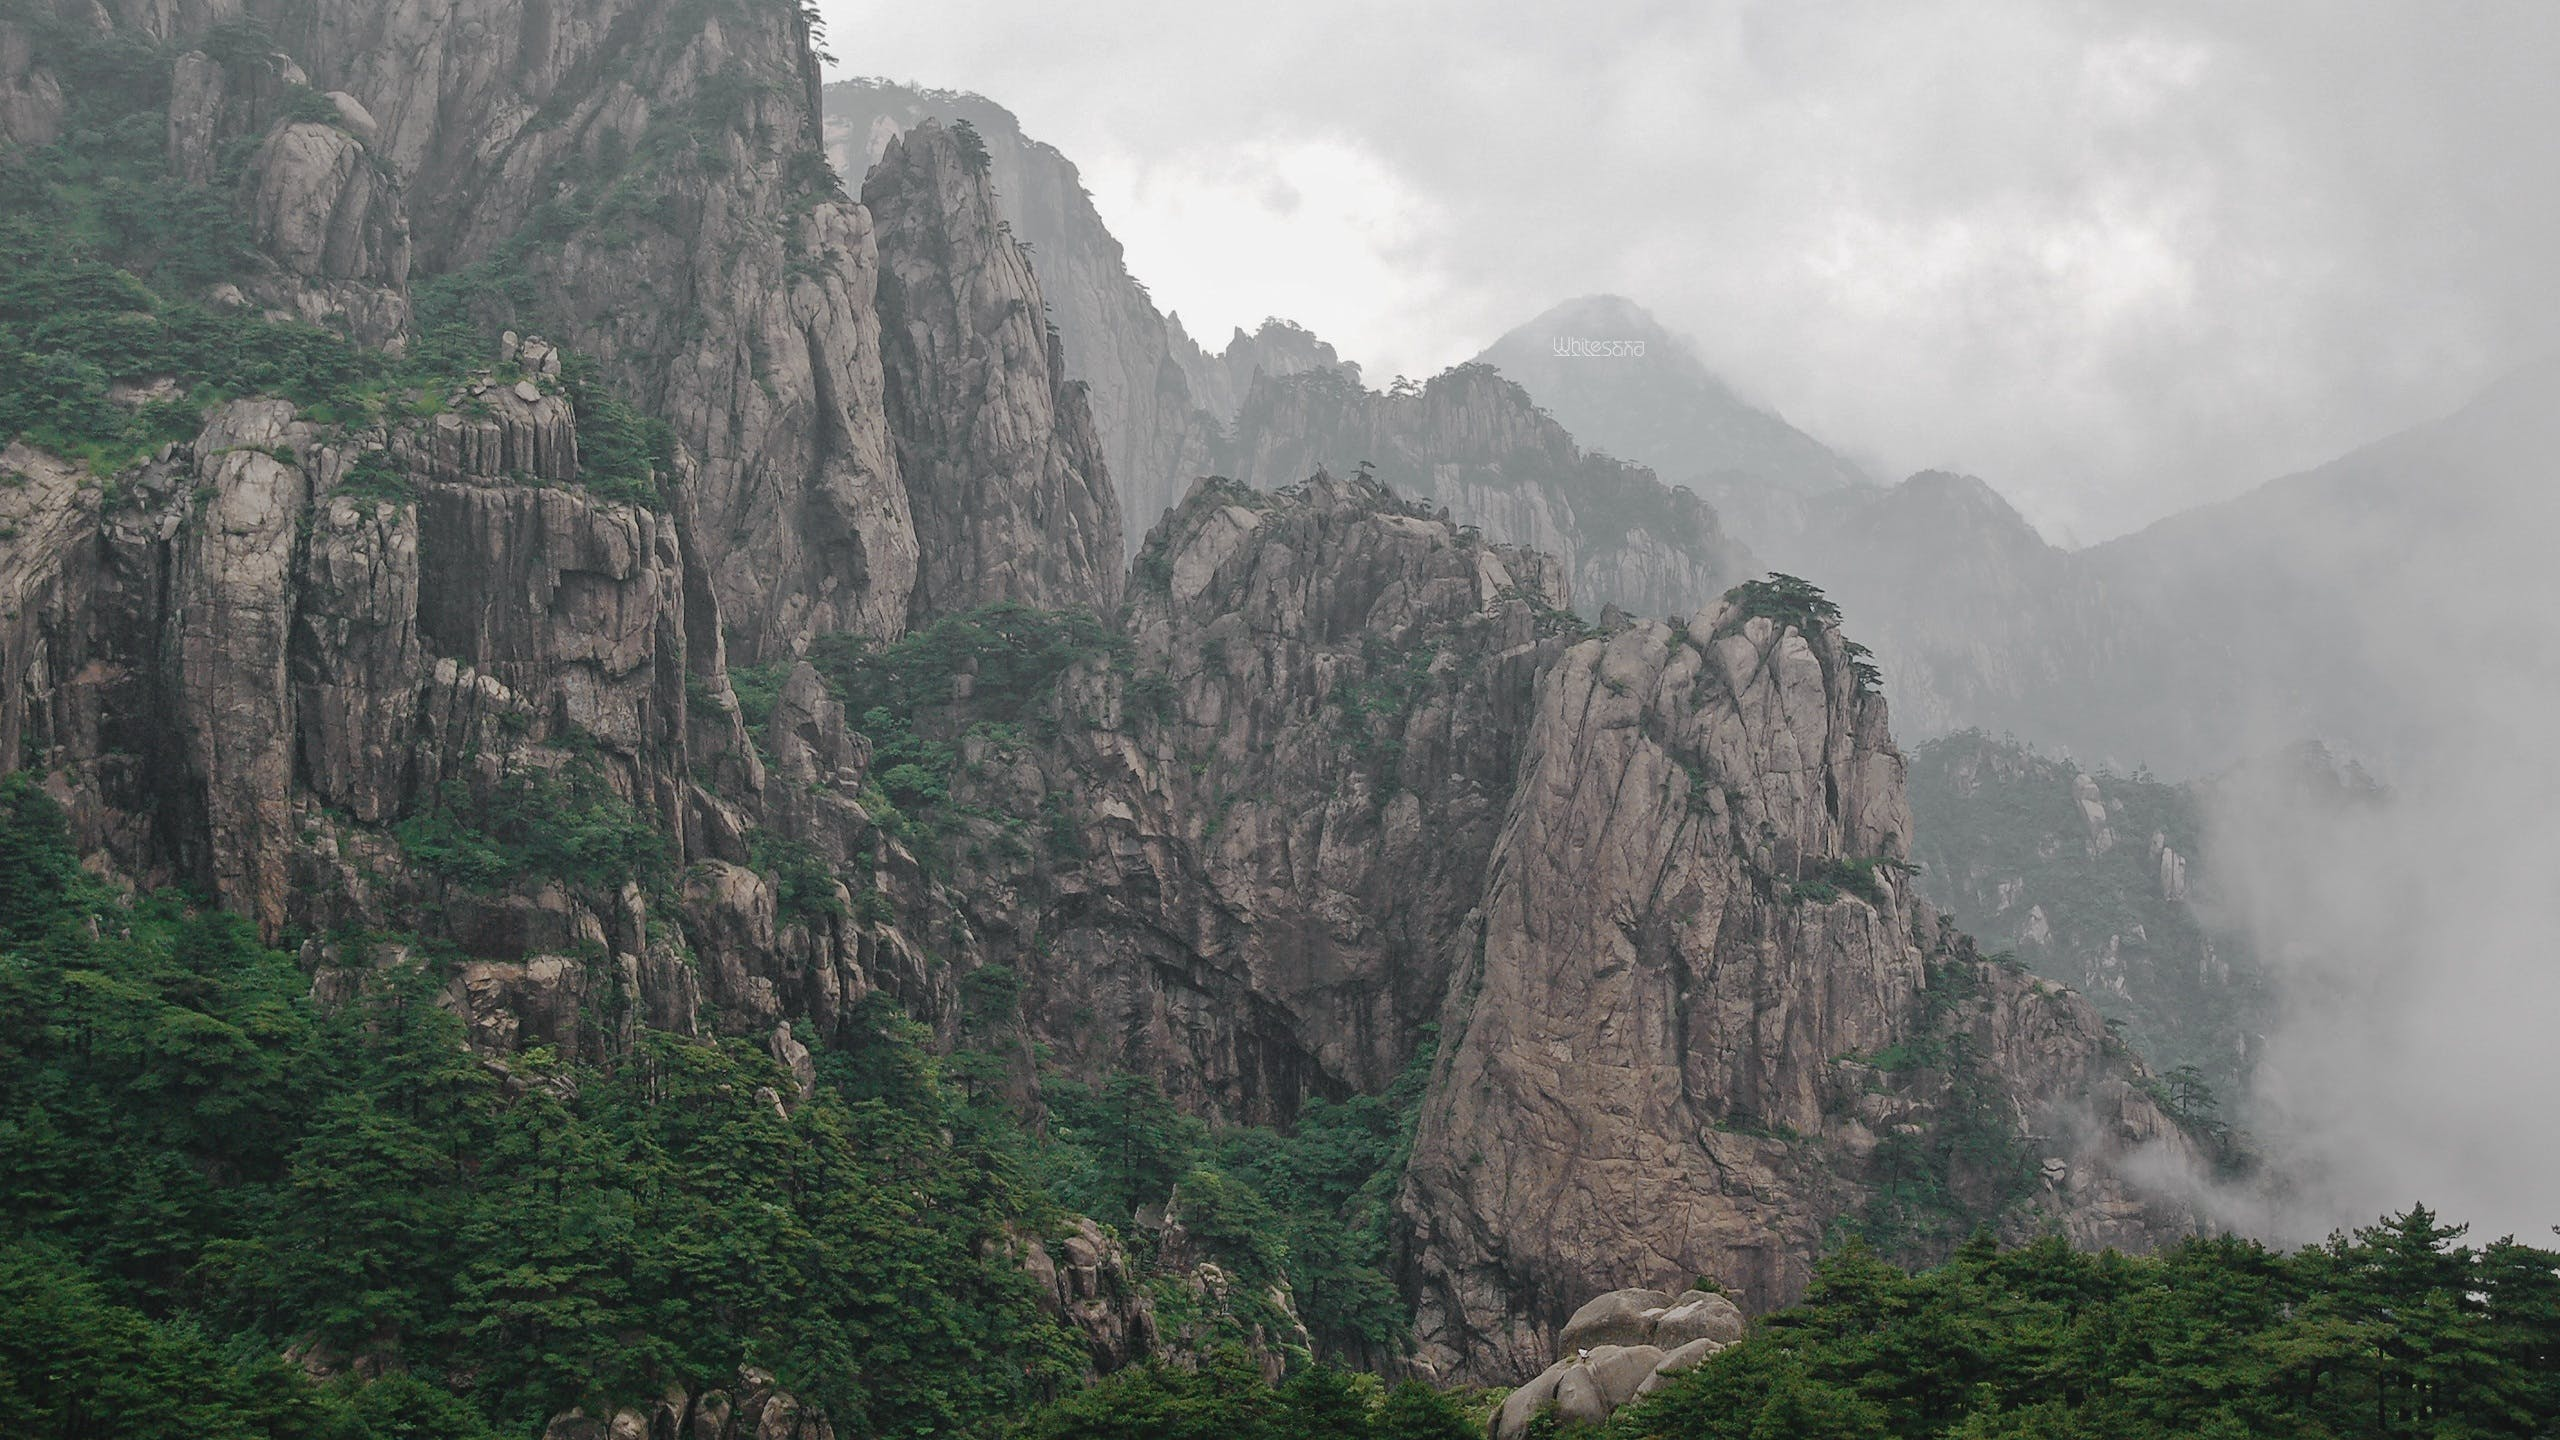 Free stock photo of mountains, rocks, forest, fog